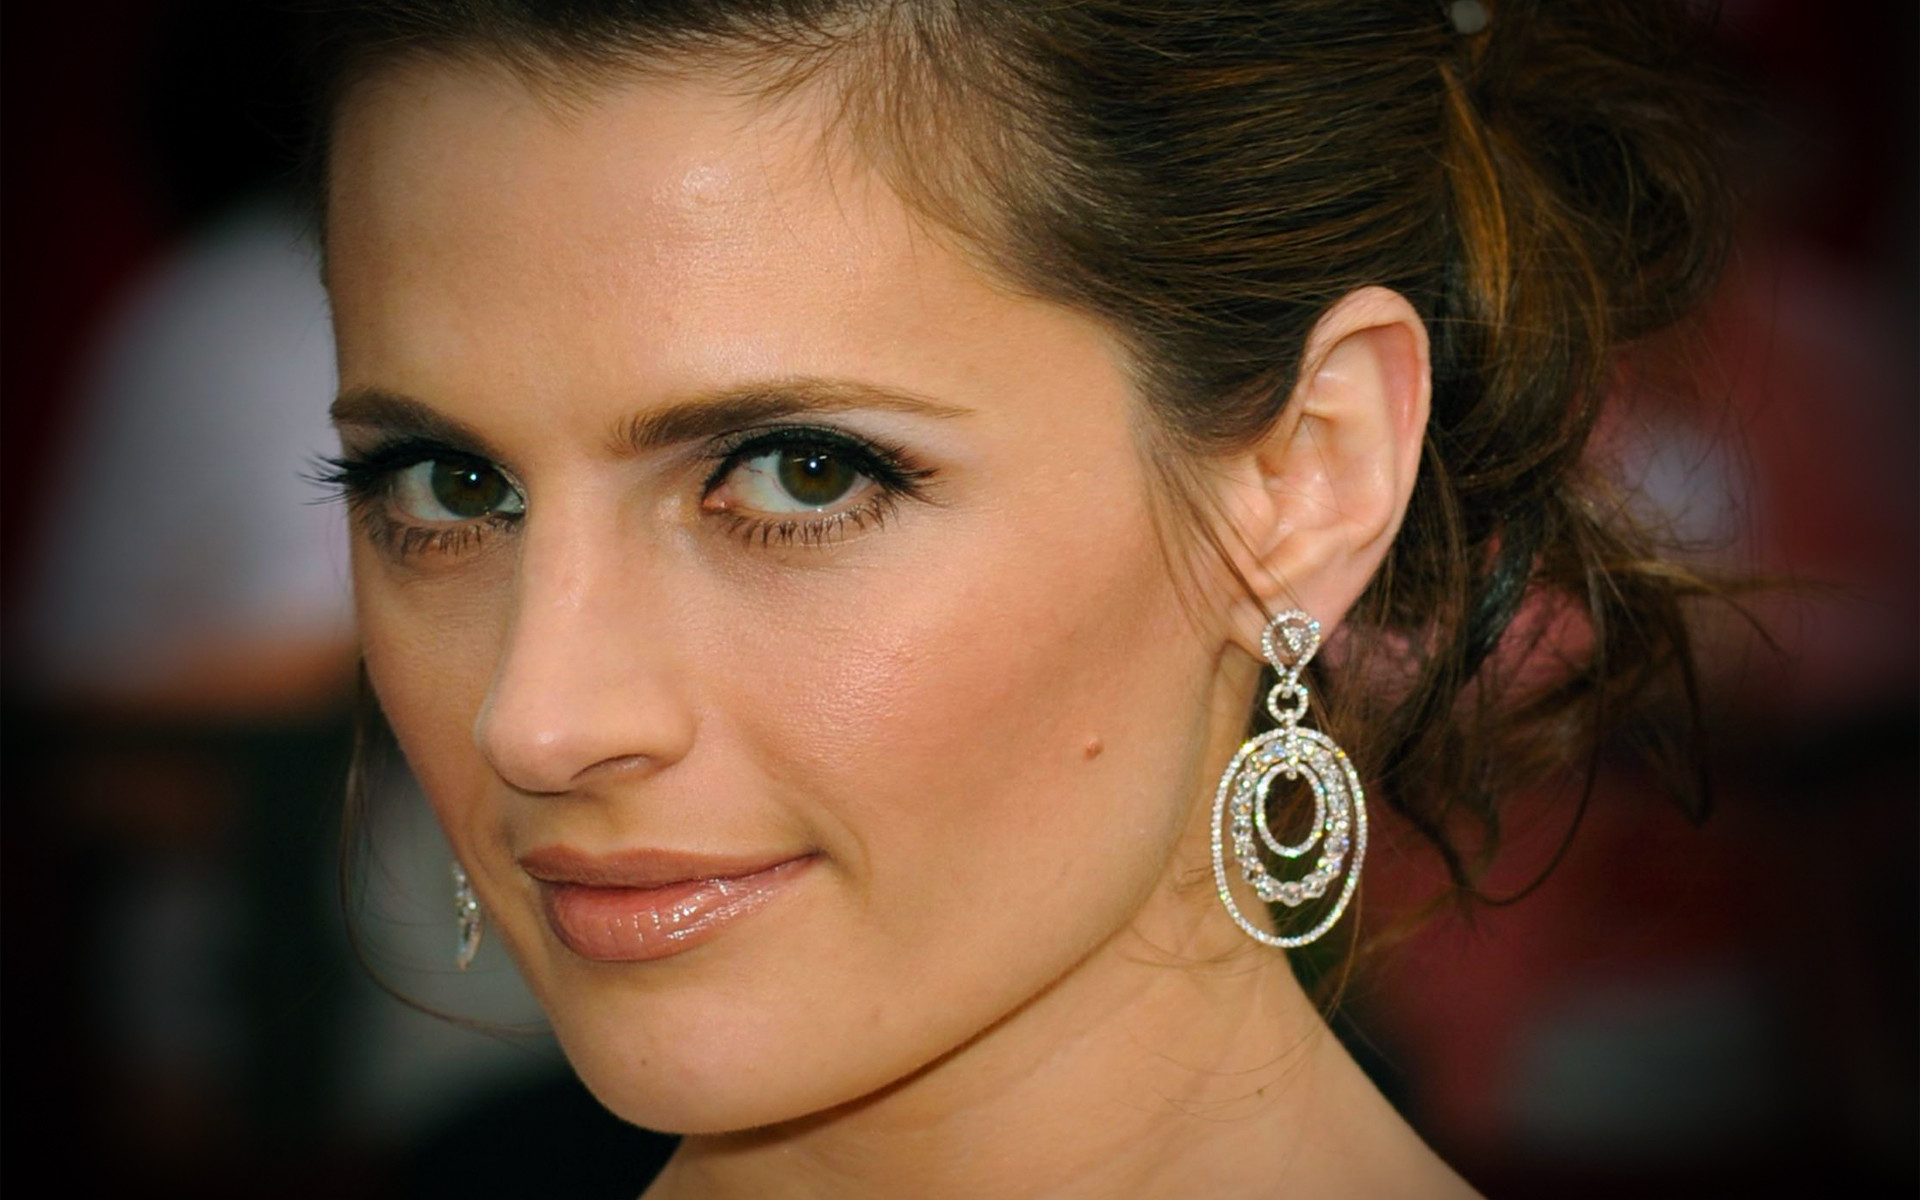 1920x1200 Wallpaper Stana Katic Face Girls Earrings Glance Celebrities   Staring